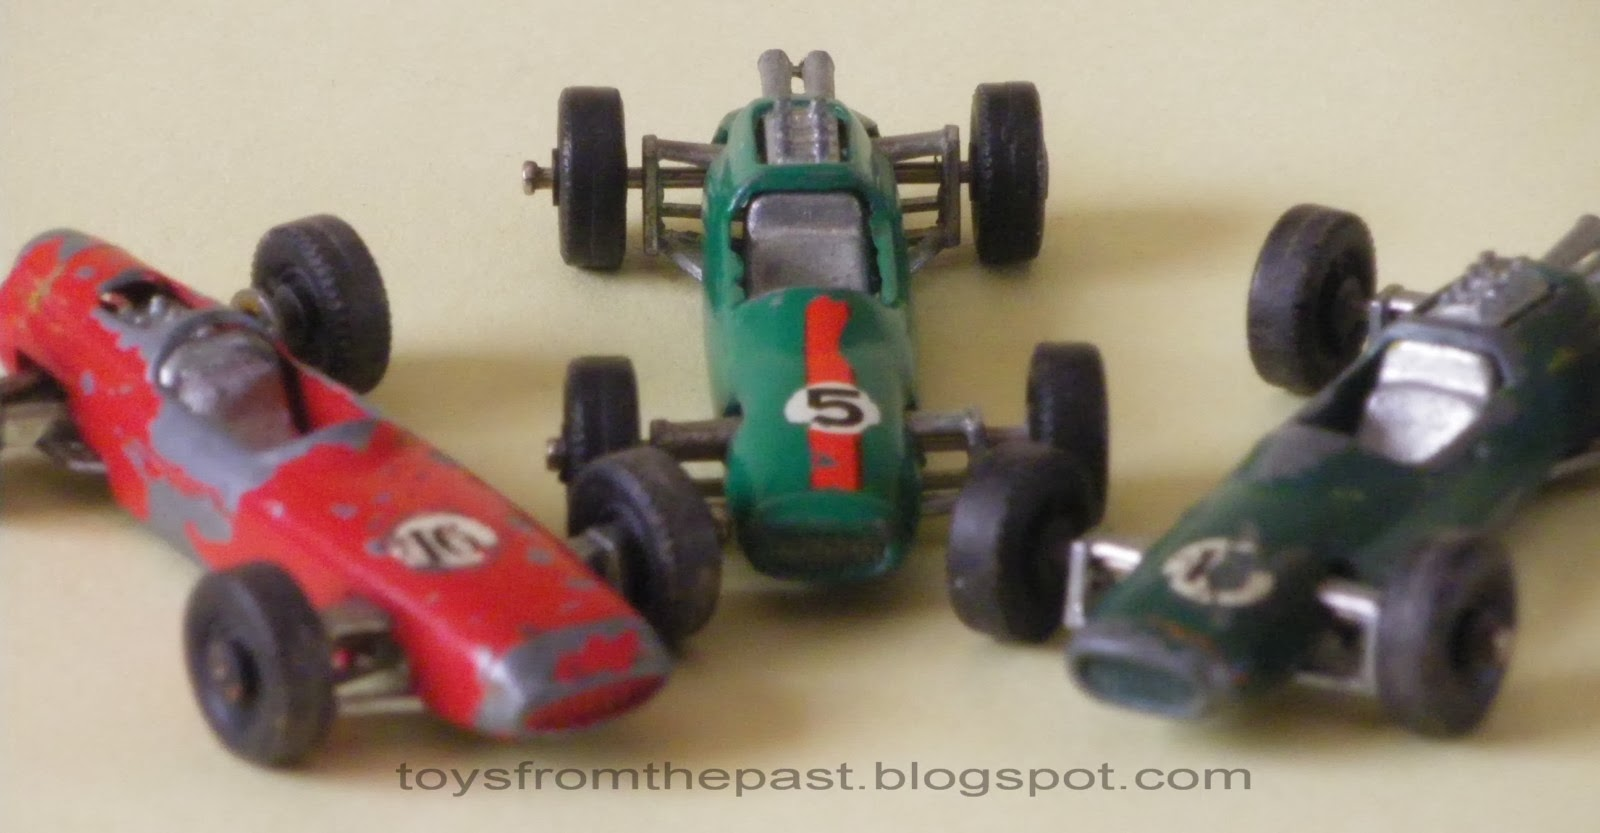 Toys From The Past : Toys from the past international payÁ vs matchbox